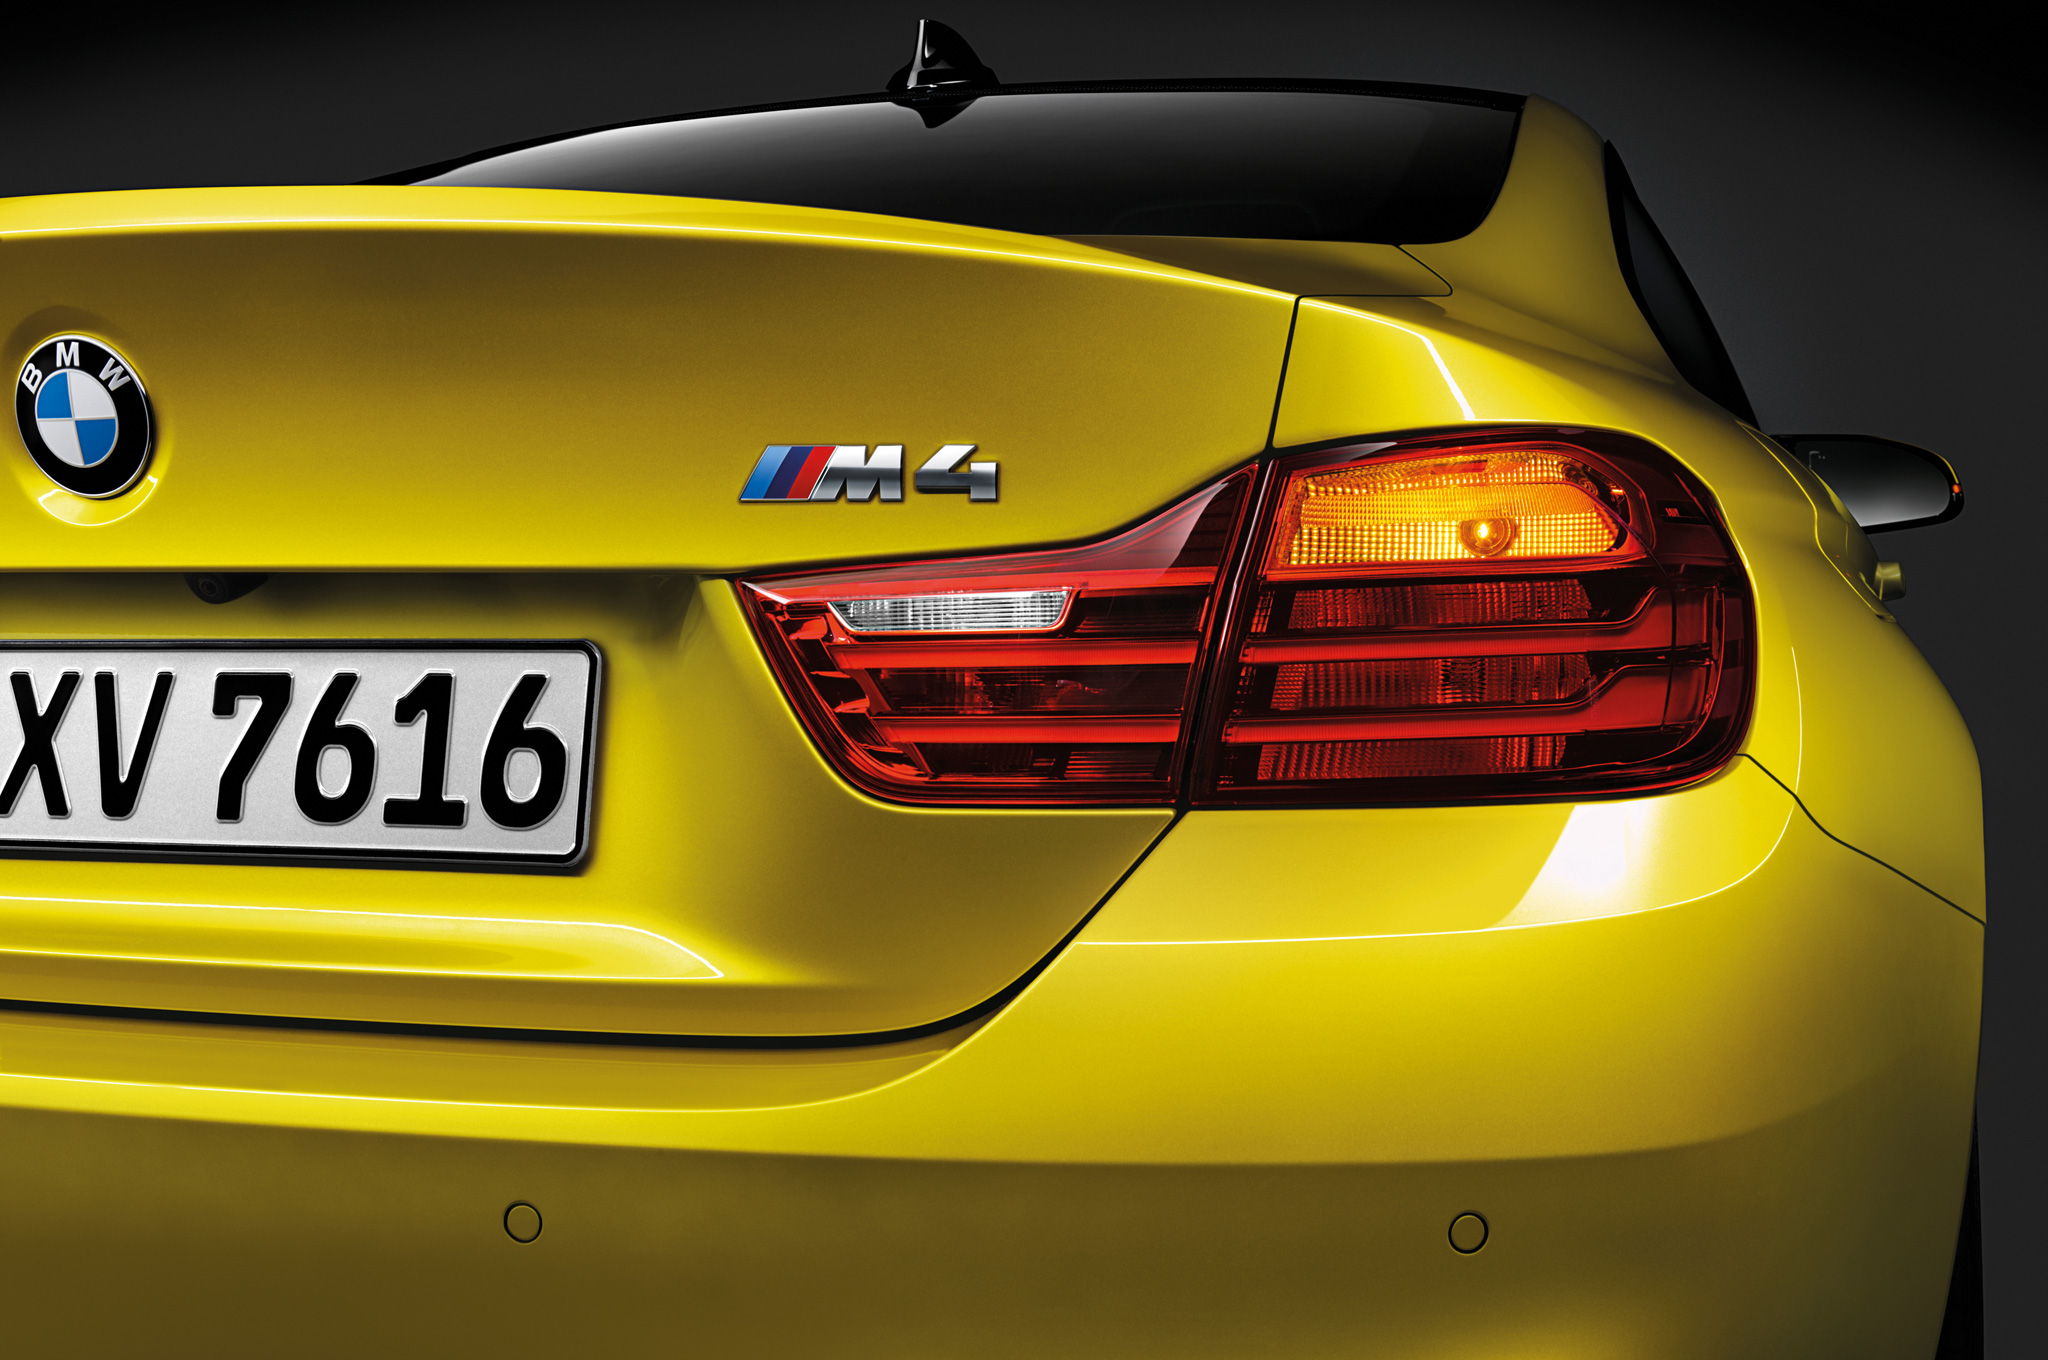 2015 Bmw M4 Trunk And Rear Lamp (Photo 40 of 41)